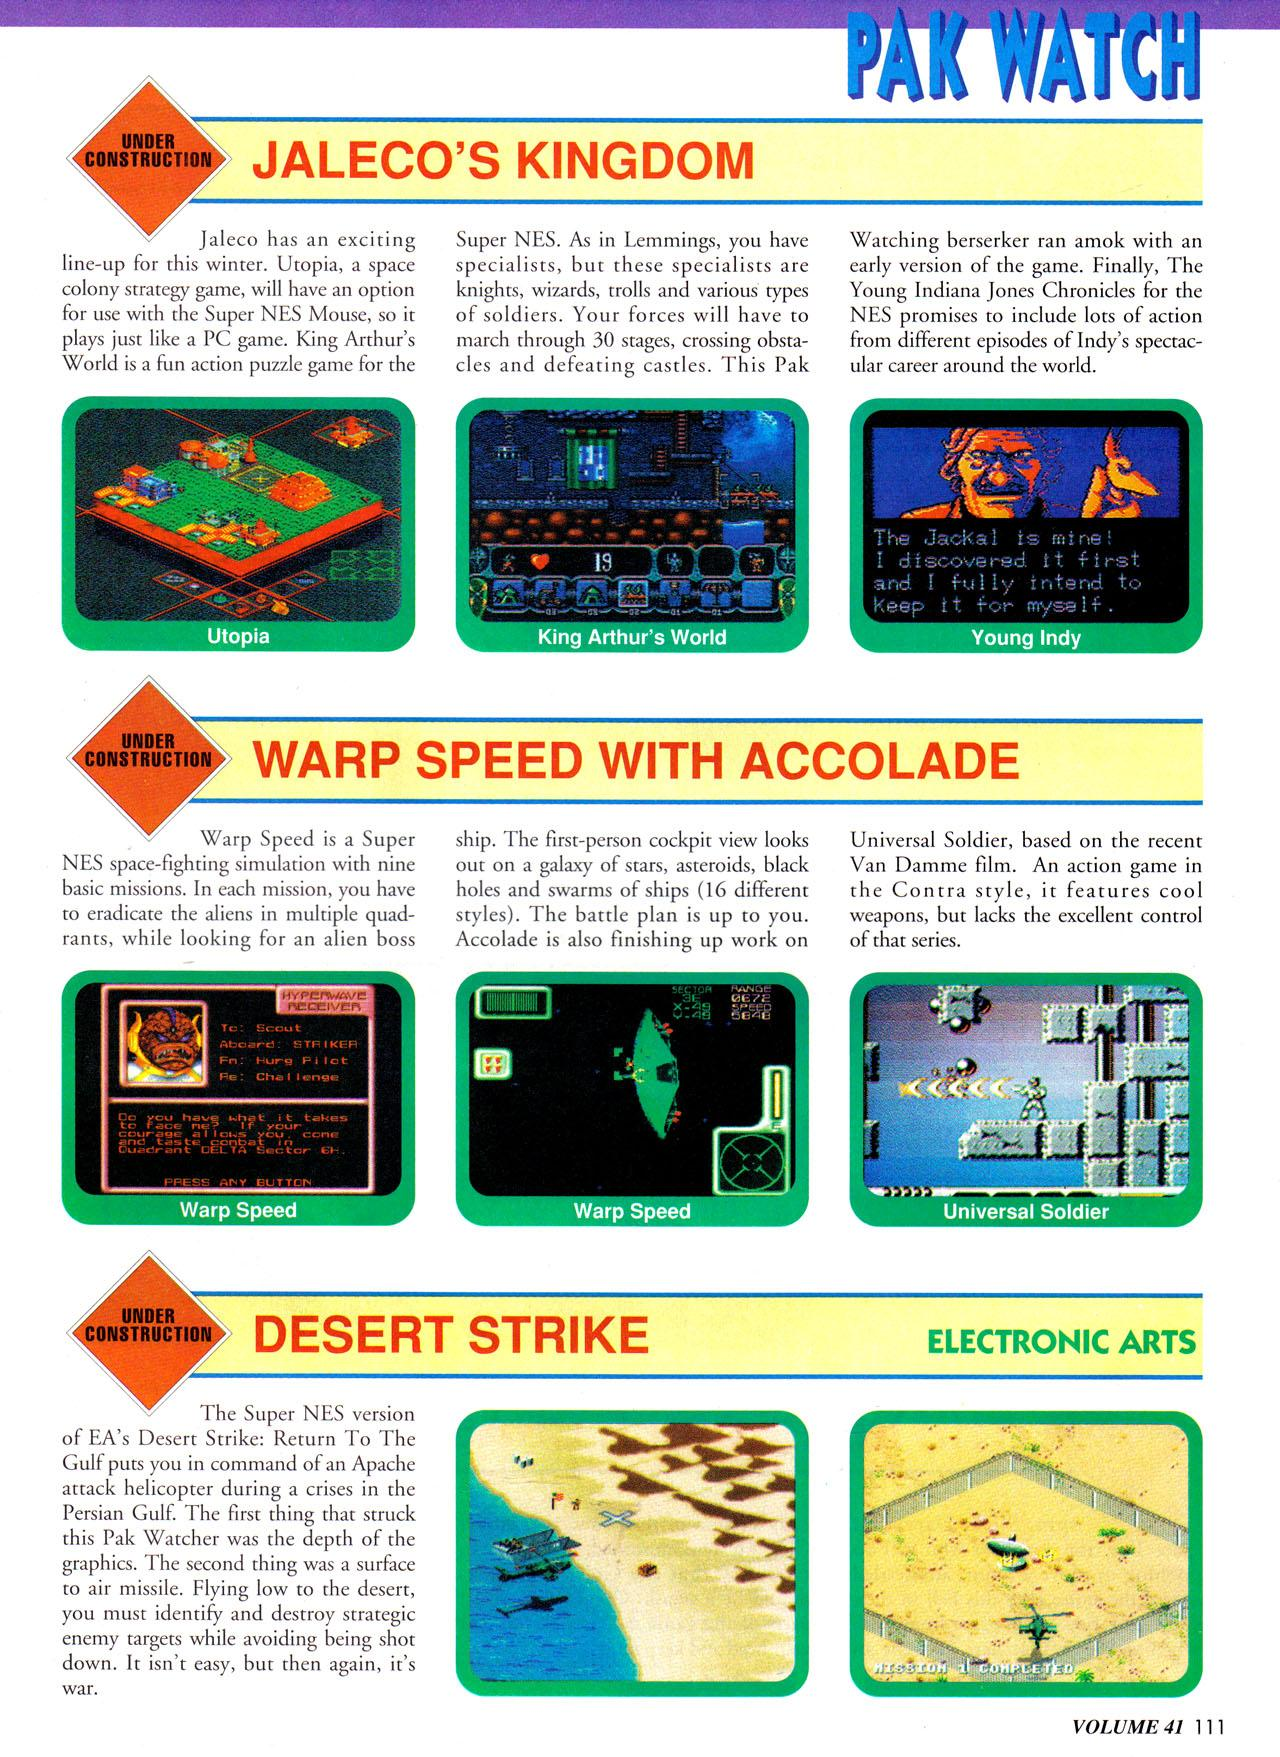 Preview in the October 1992 issue of Nintendo Power